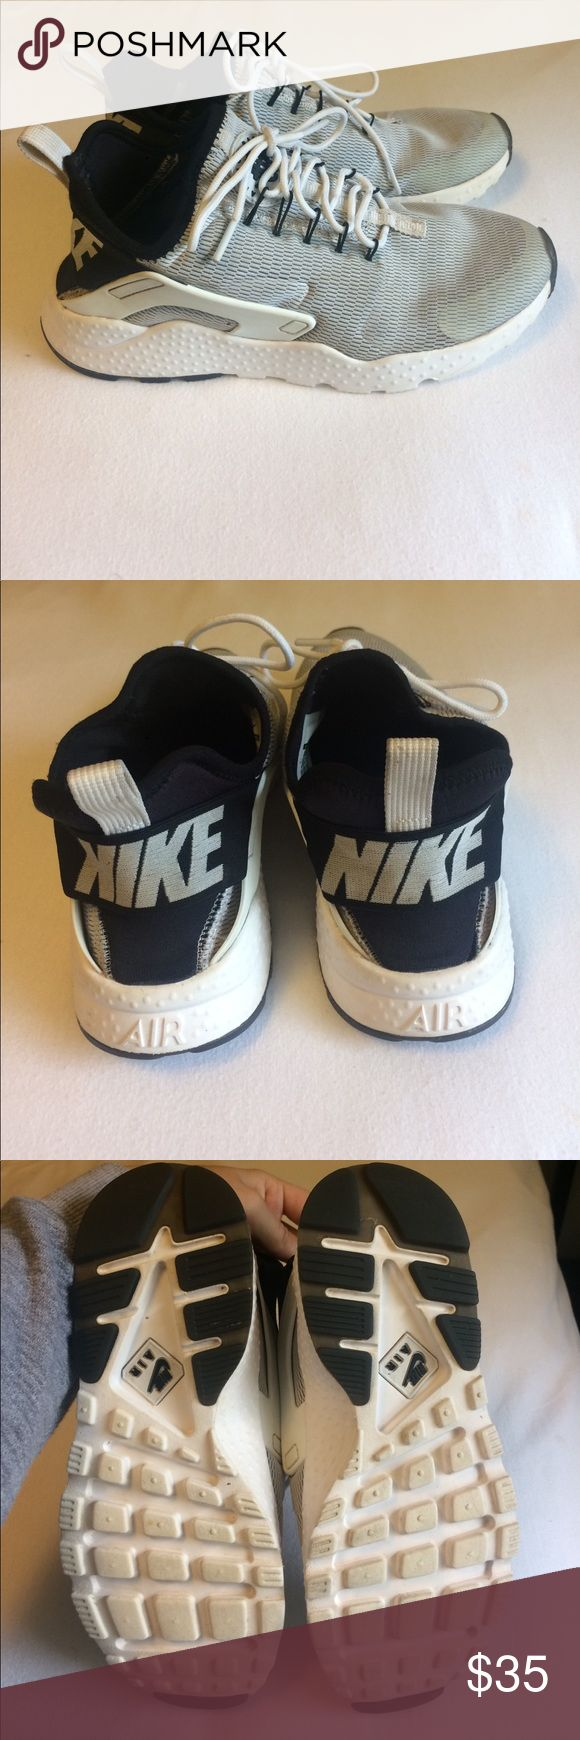 Grey black and white Nike air huarache Size 6.5 women's Nike air Huarache shoes. Have been worn and a little dirty on the toes. Probably could be washed clean. Originally $110. Nike Shoes Athletic Shoes